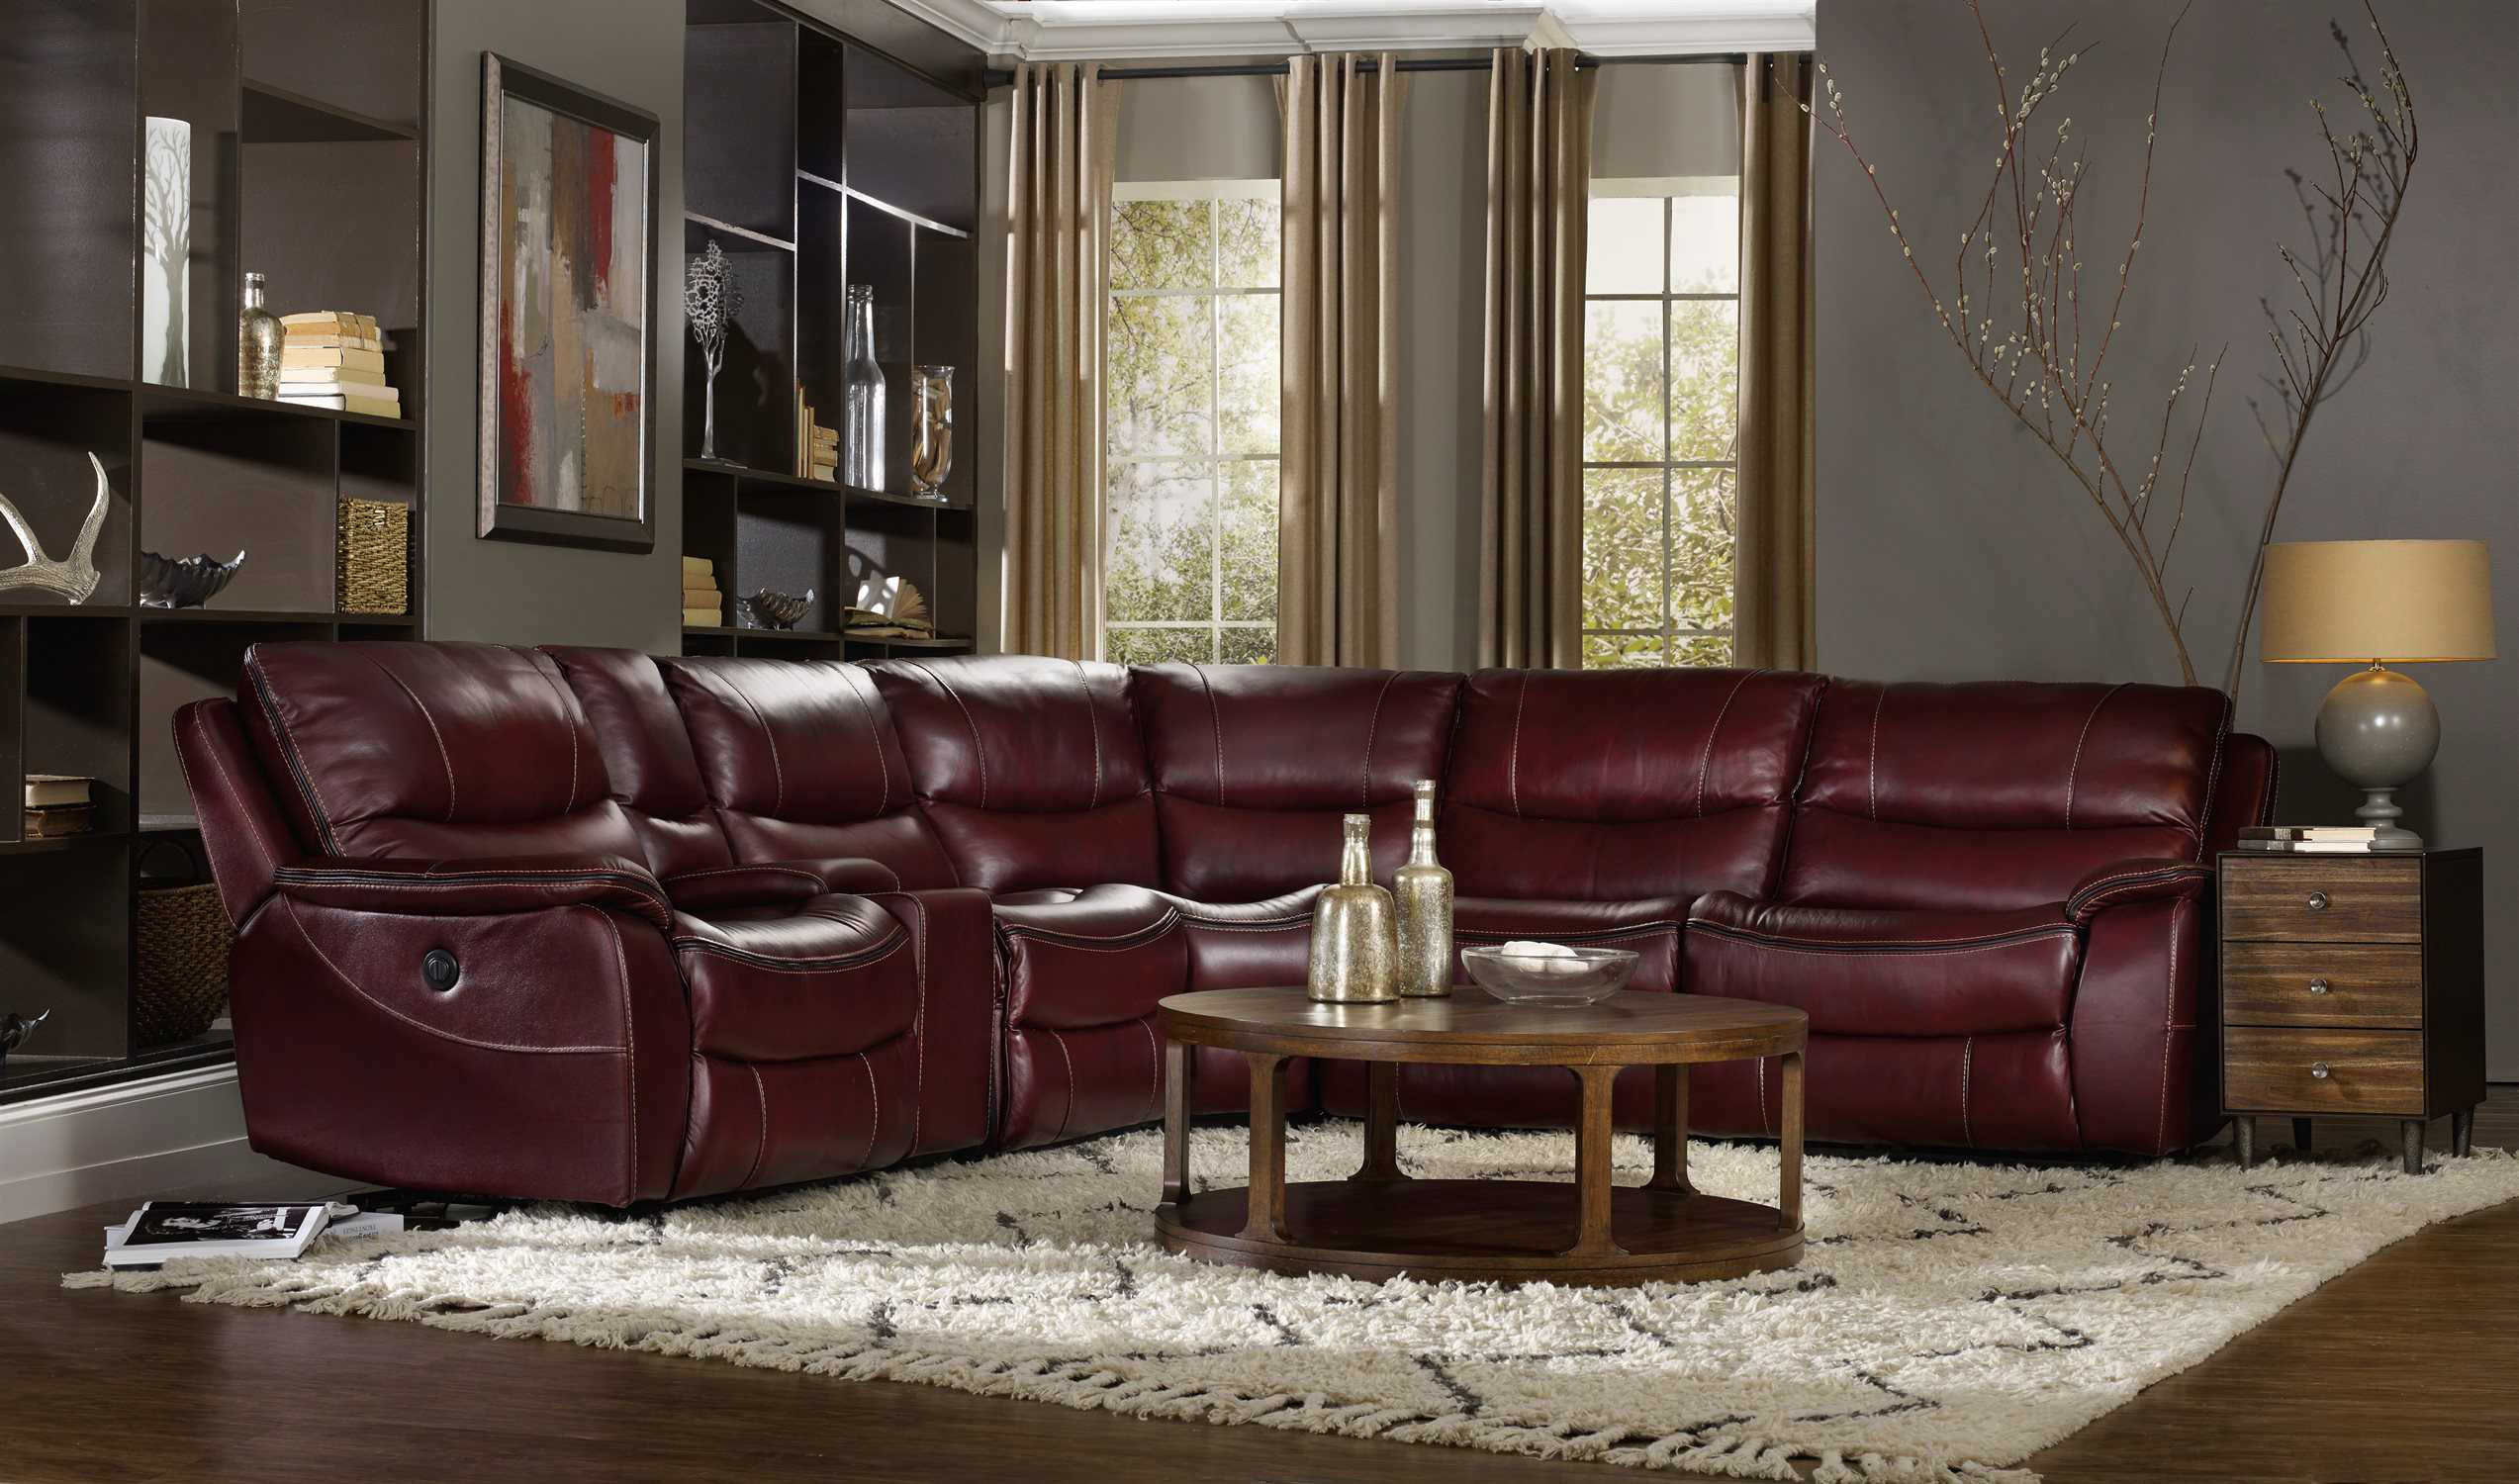 Red Living Room: Hooker Furniture Red Wine With Black Trim Living Room Set